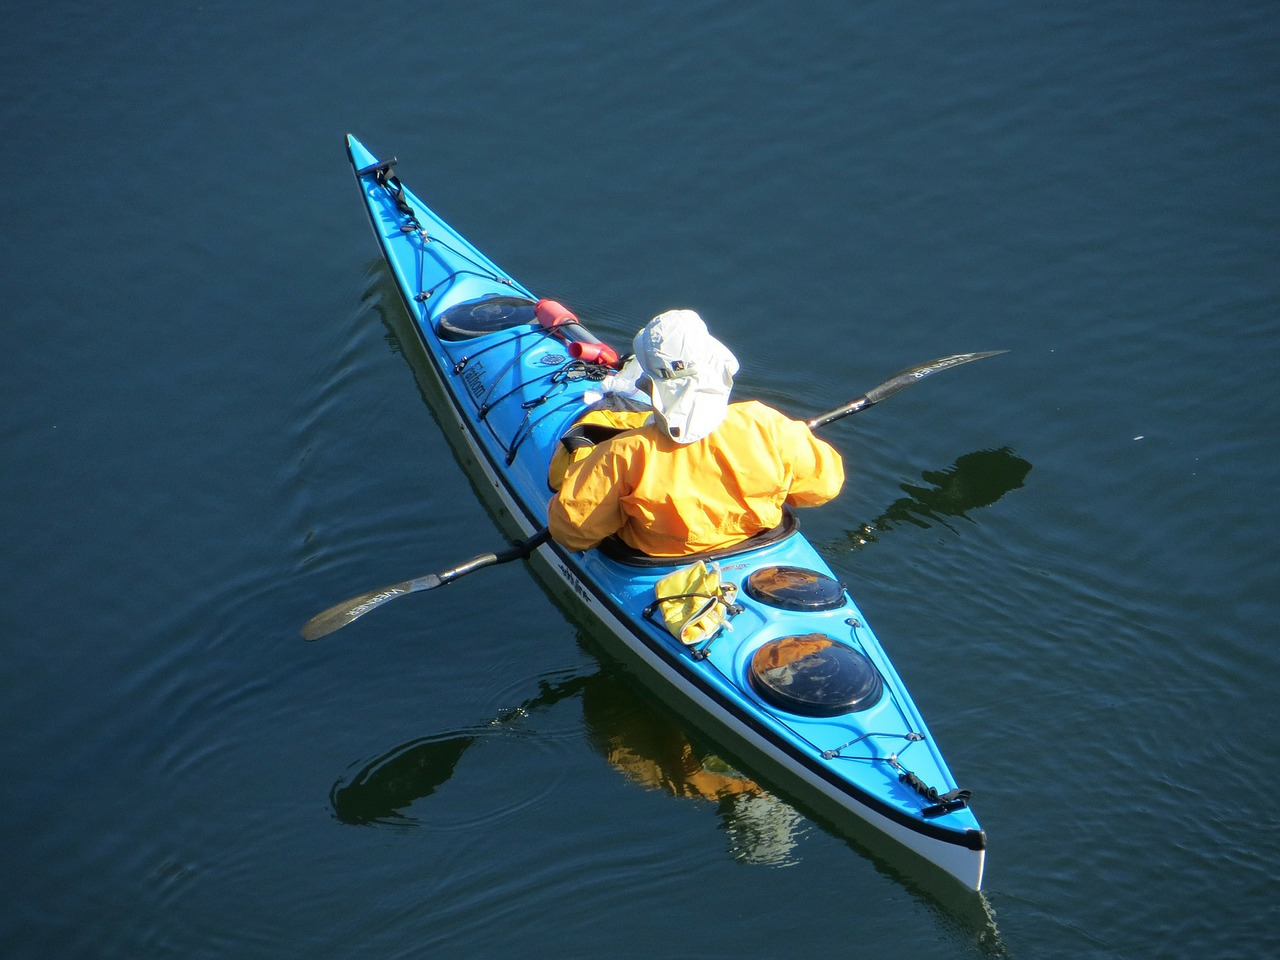 Insulation and protection from wind and water are important factors to consider when choosing your paddling outfit.